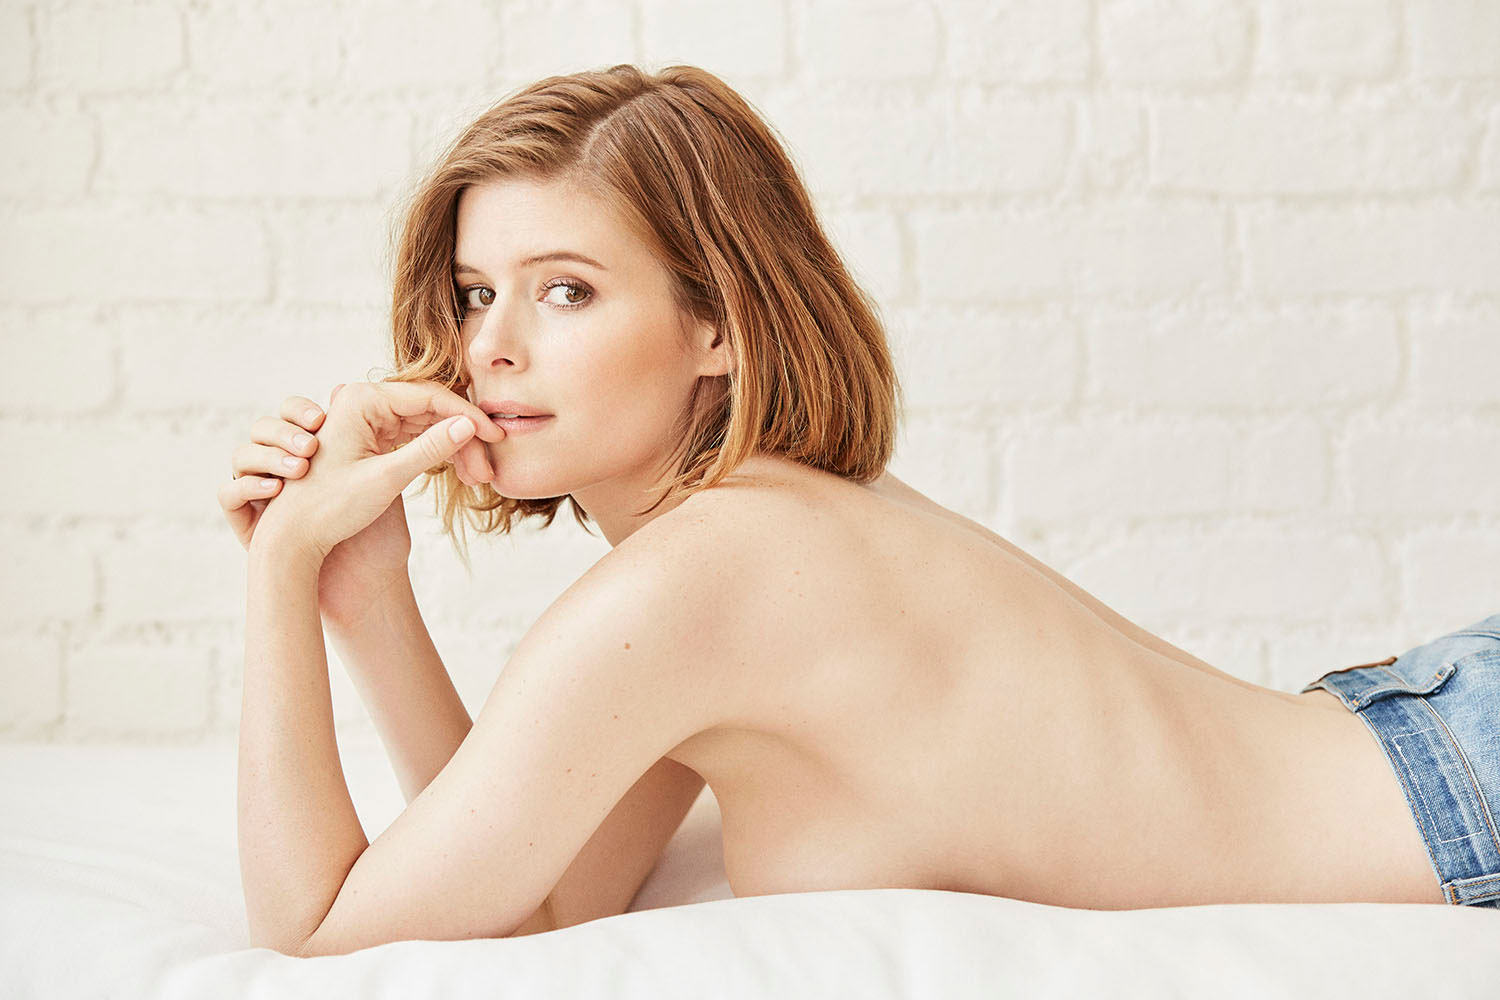 Drucker_Esquire_Kate-Mara_02_Final